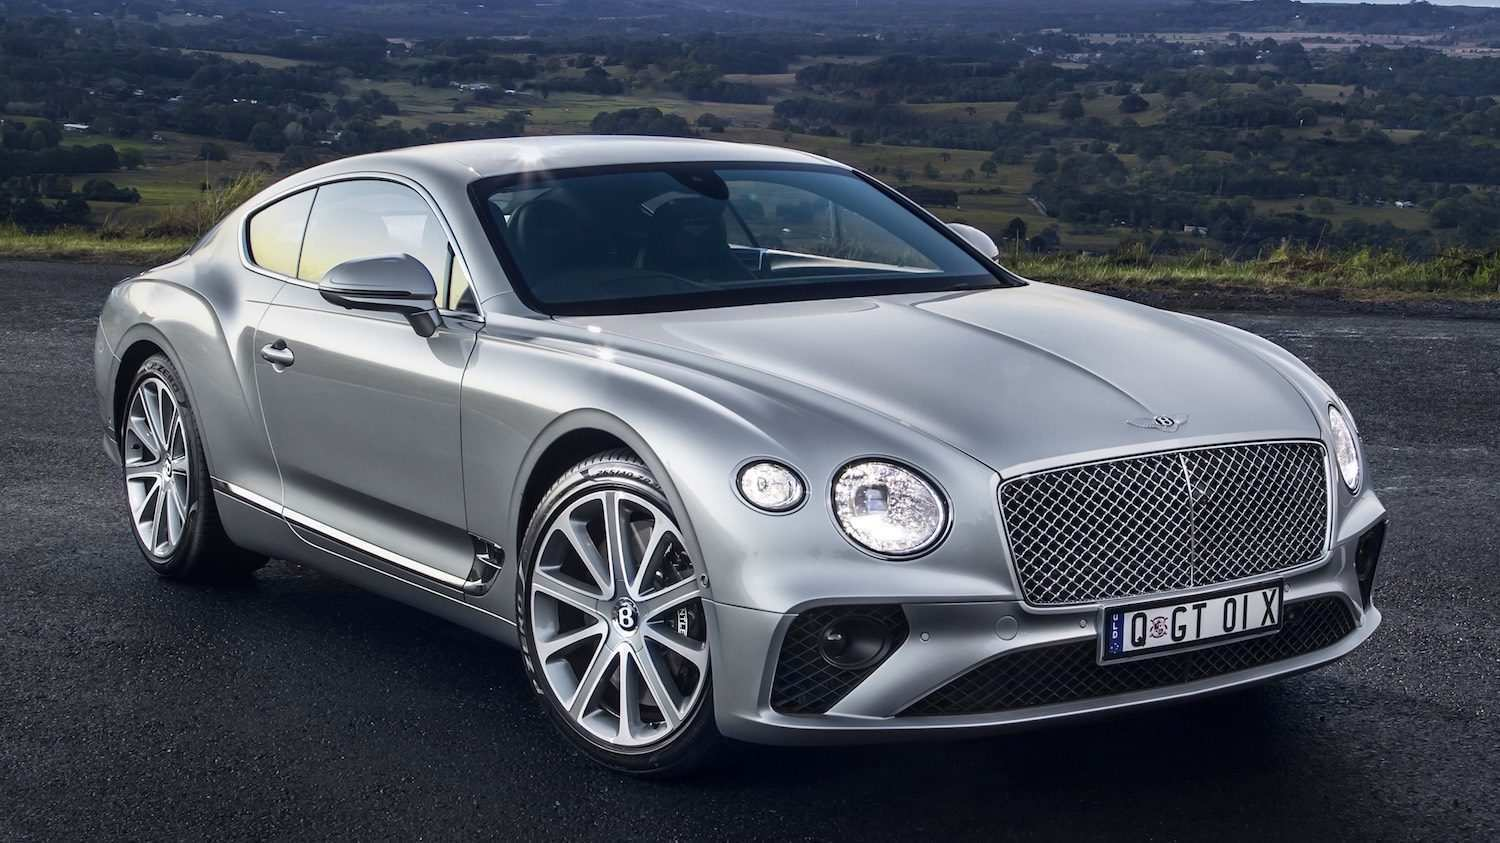 79 All New 2019 Bentley Continental Style